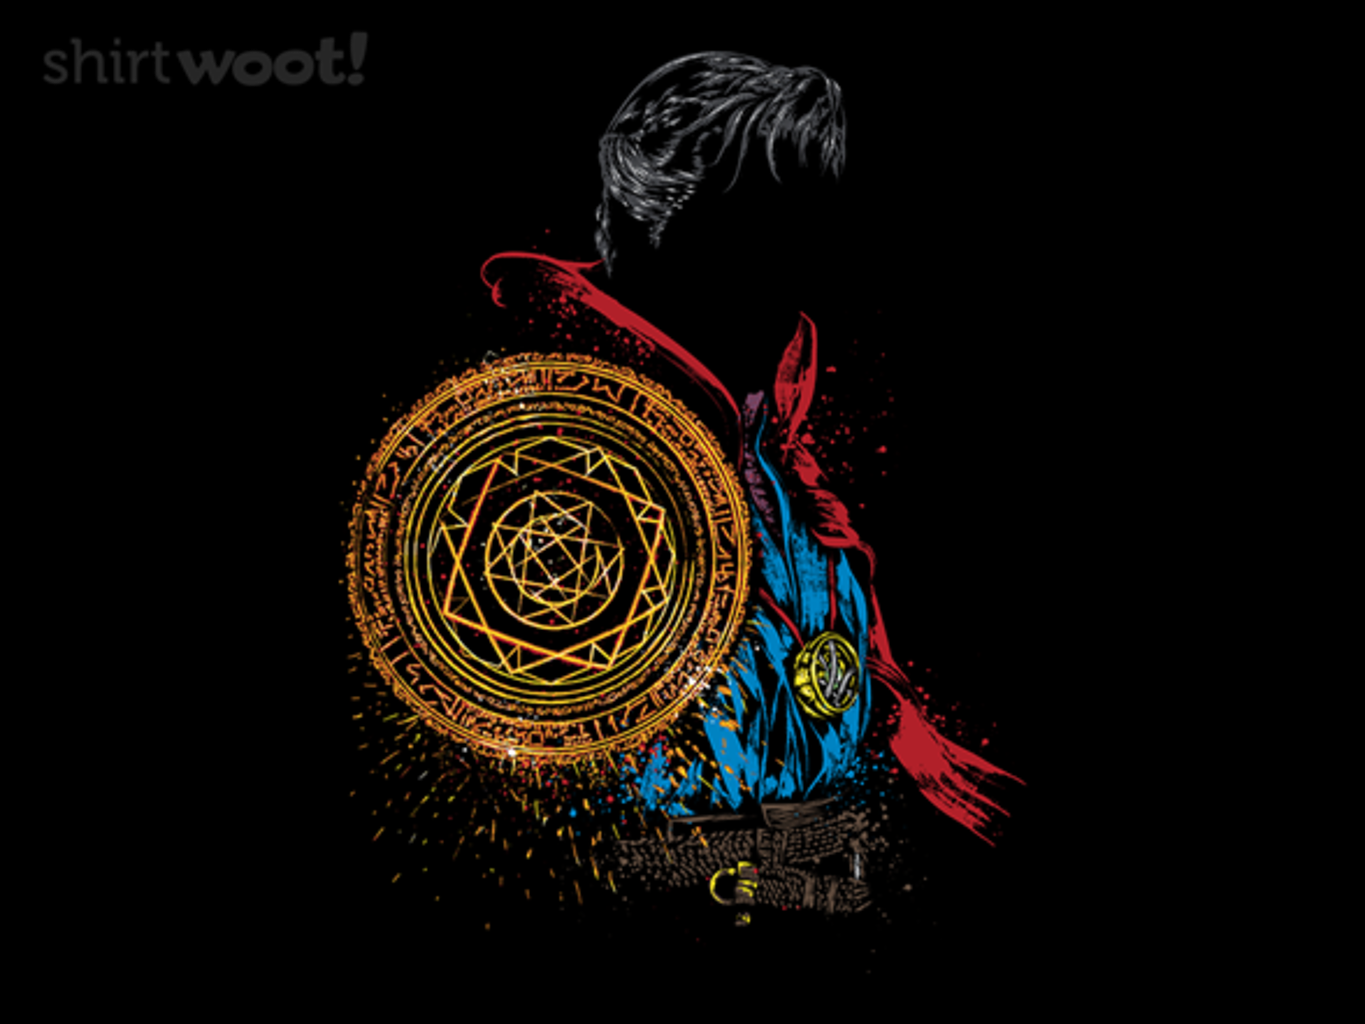 Woot!: The Power of Magic